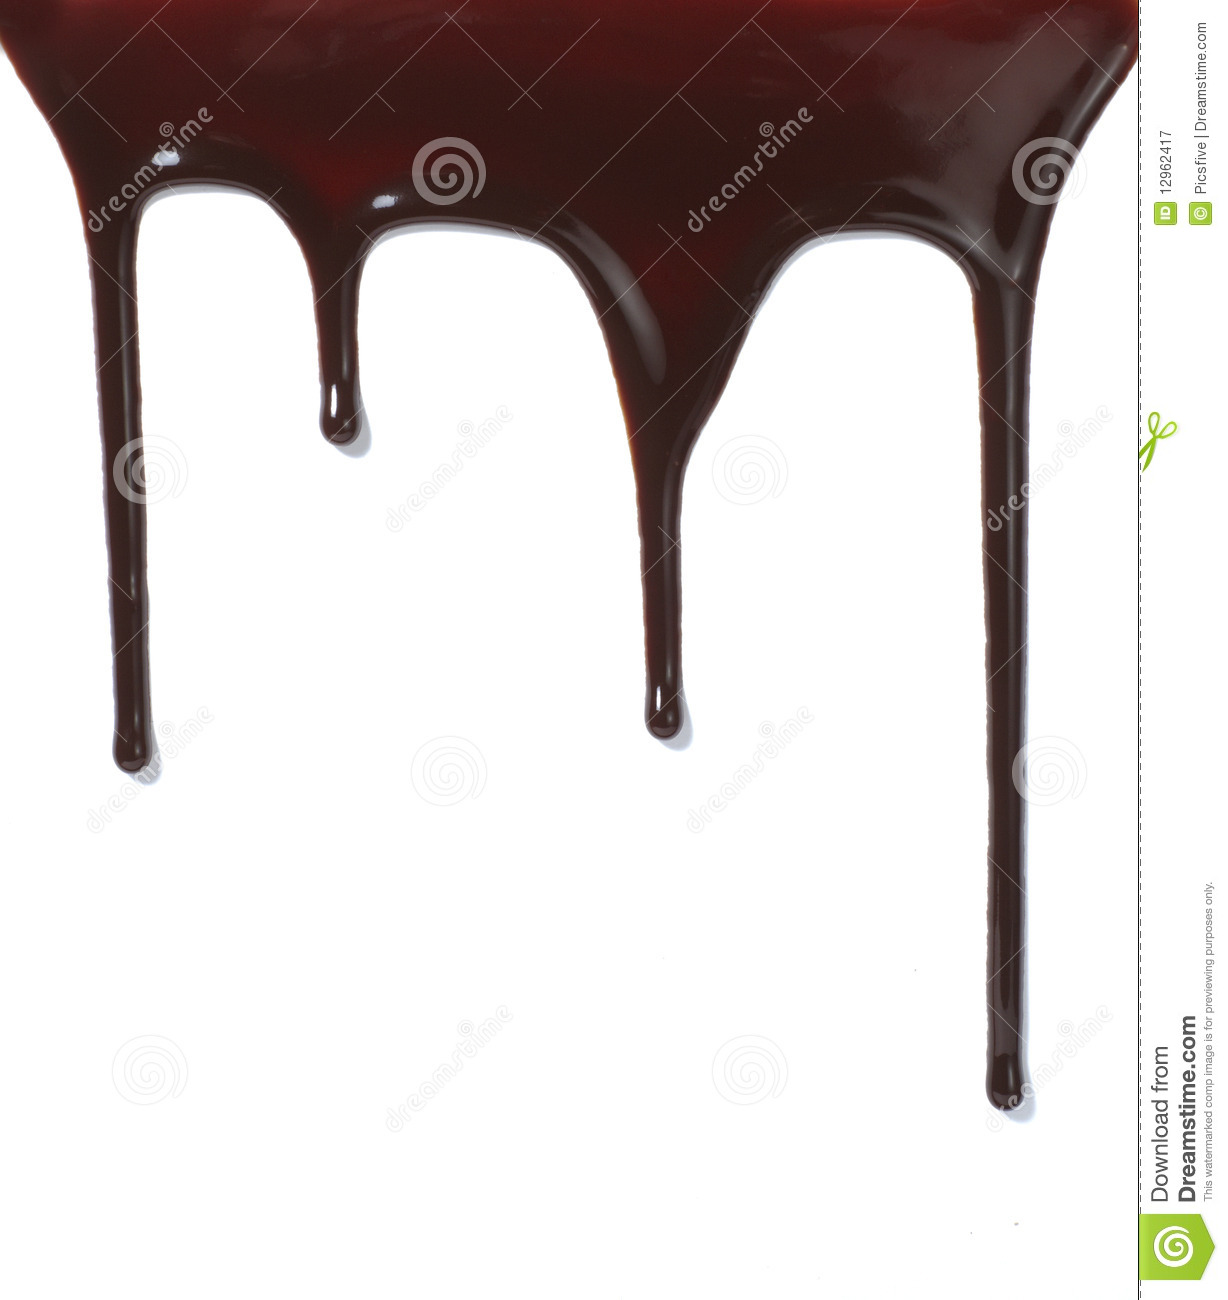 Chocolate Syrup Leaking Liquid Sweet Food Royalty Free Stock ...